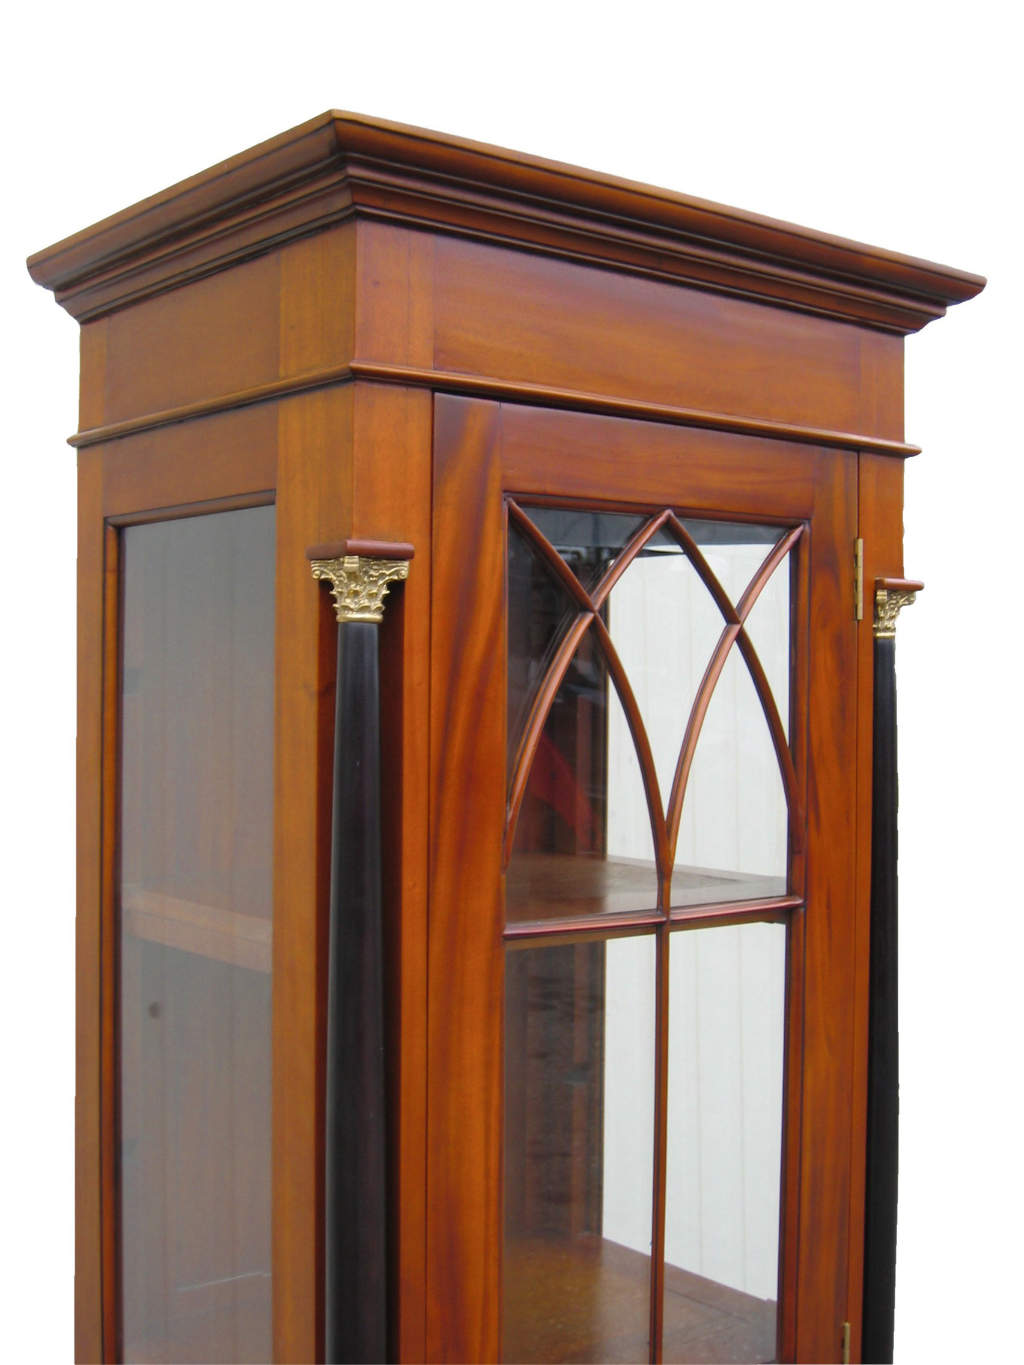 biedermeier vitrine kirsche antik massiv m bel. Black Bedroom Furniture Sets. Home Design Ideas